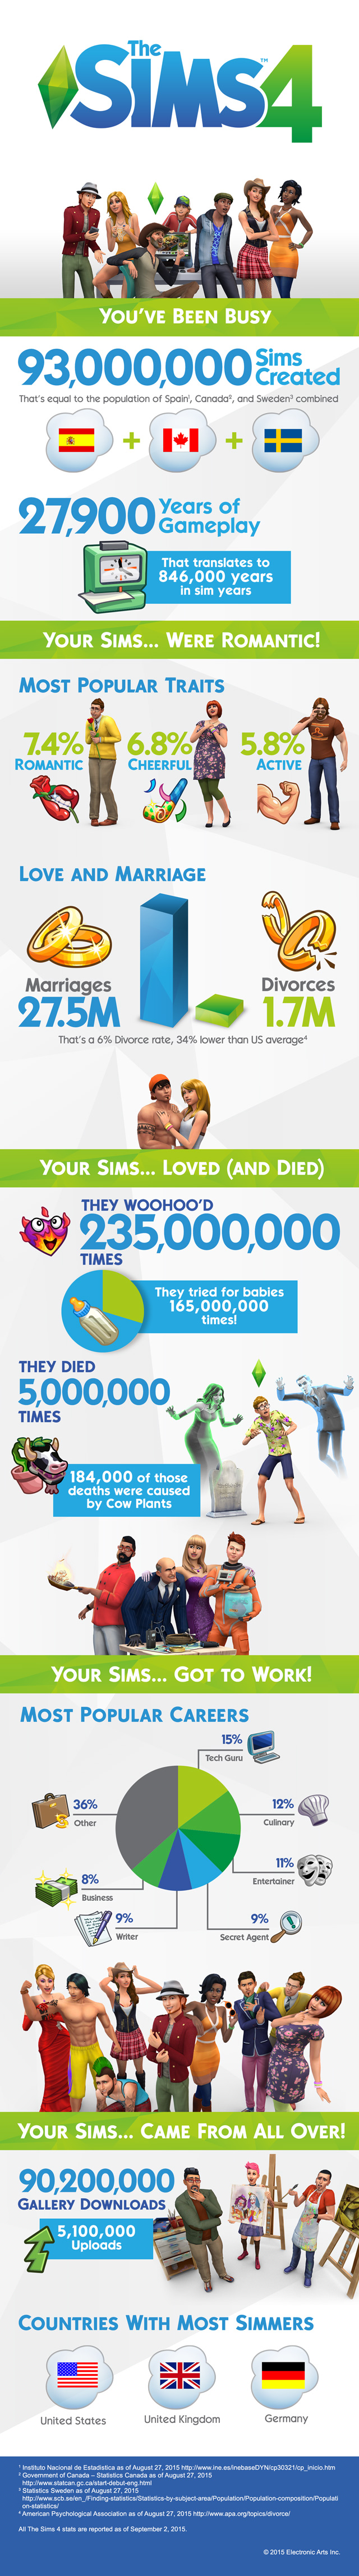 TS4_Anniversary_infographic_Final_EN